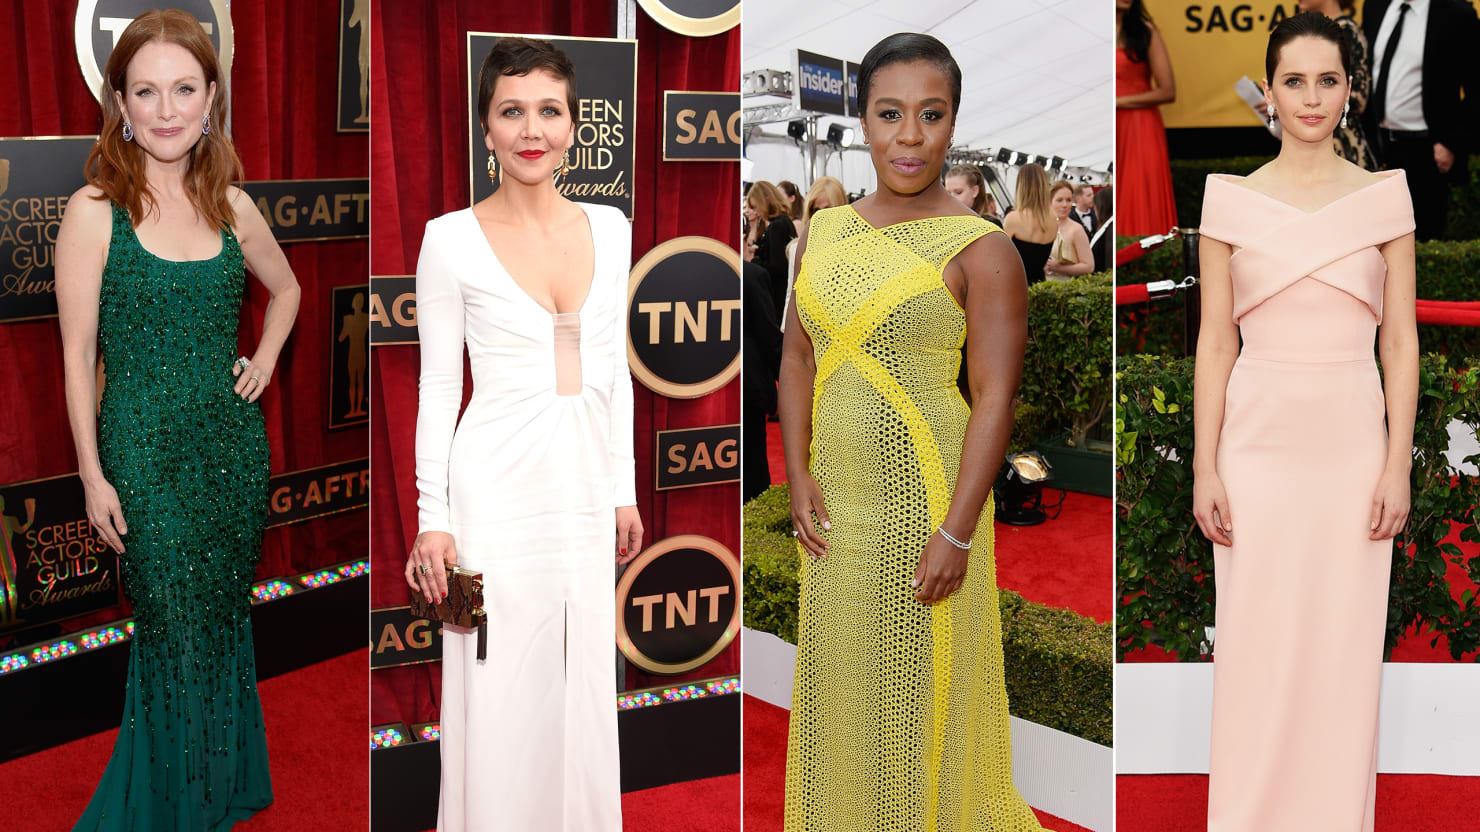 SAG Red Carpet Winners and Losers